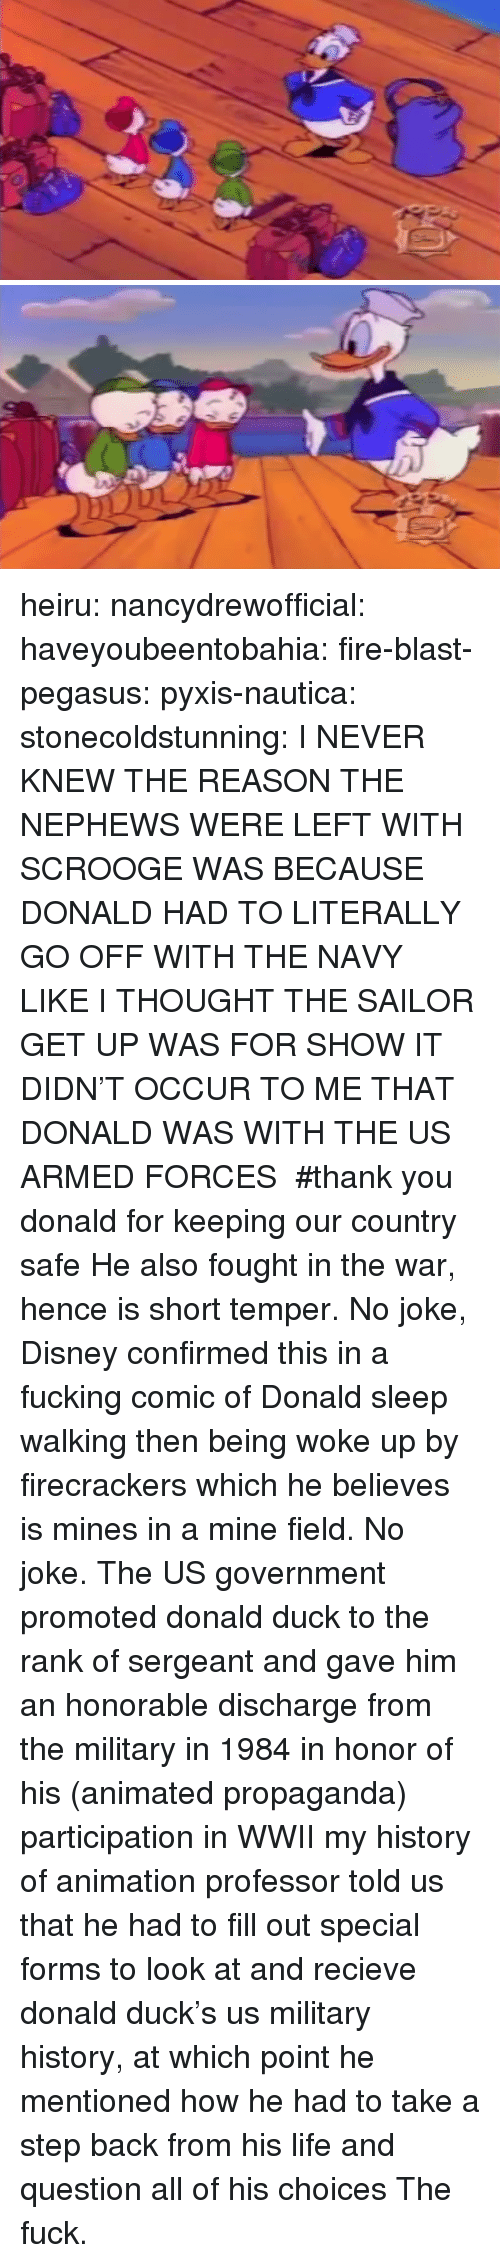 military history: heiru:  nancydrewofficial:  haveyoubeentobahia:  fire-blast-pegasus:  pyxis-nautica:  stonecoldstunning:  I NEVER KNEW THE REASON THE NEPHEWS WERE LEFT WITH SCROOGE WAS BECAUSE DONALD HAD TO LITERALLY GO OFF WITH THE NAVY LIKE I THOUGHT THE SAILOR GET UP WAS FOR SHOW IT DIDN'T OCCUR TO ME THAT DONALD WAS WITH THE US ARMED FORCES   #thank you donald for keeping our country safe  He also fought in the war, hence is short temper. No joke, Disney confirmed this in a fucking comic of Donald sleep walking then being woke up by firecrackers which he believes is mines in a mine field. No joke.  The US government promoted donald duck to the rank of sergeant and gave him an honorable discharge from the military in 1984 in honor of his (animated propaganda) participation in WWII  my history of animation professor told us that he had to fill out special forms to look at and recieve donald duck's us military history, at which point he mentioned how he had to take a step back from his life and question all of his choices  The fuck.